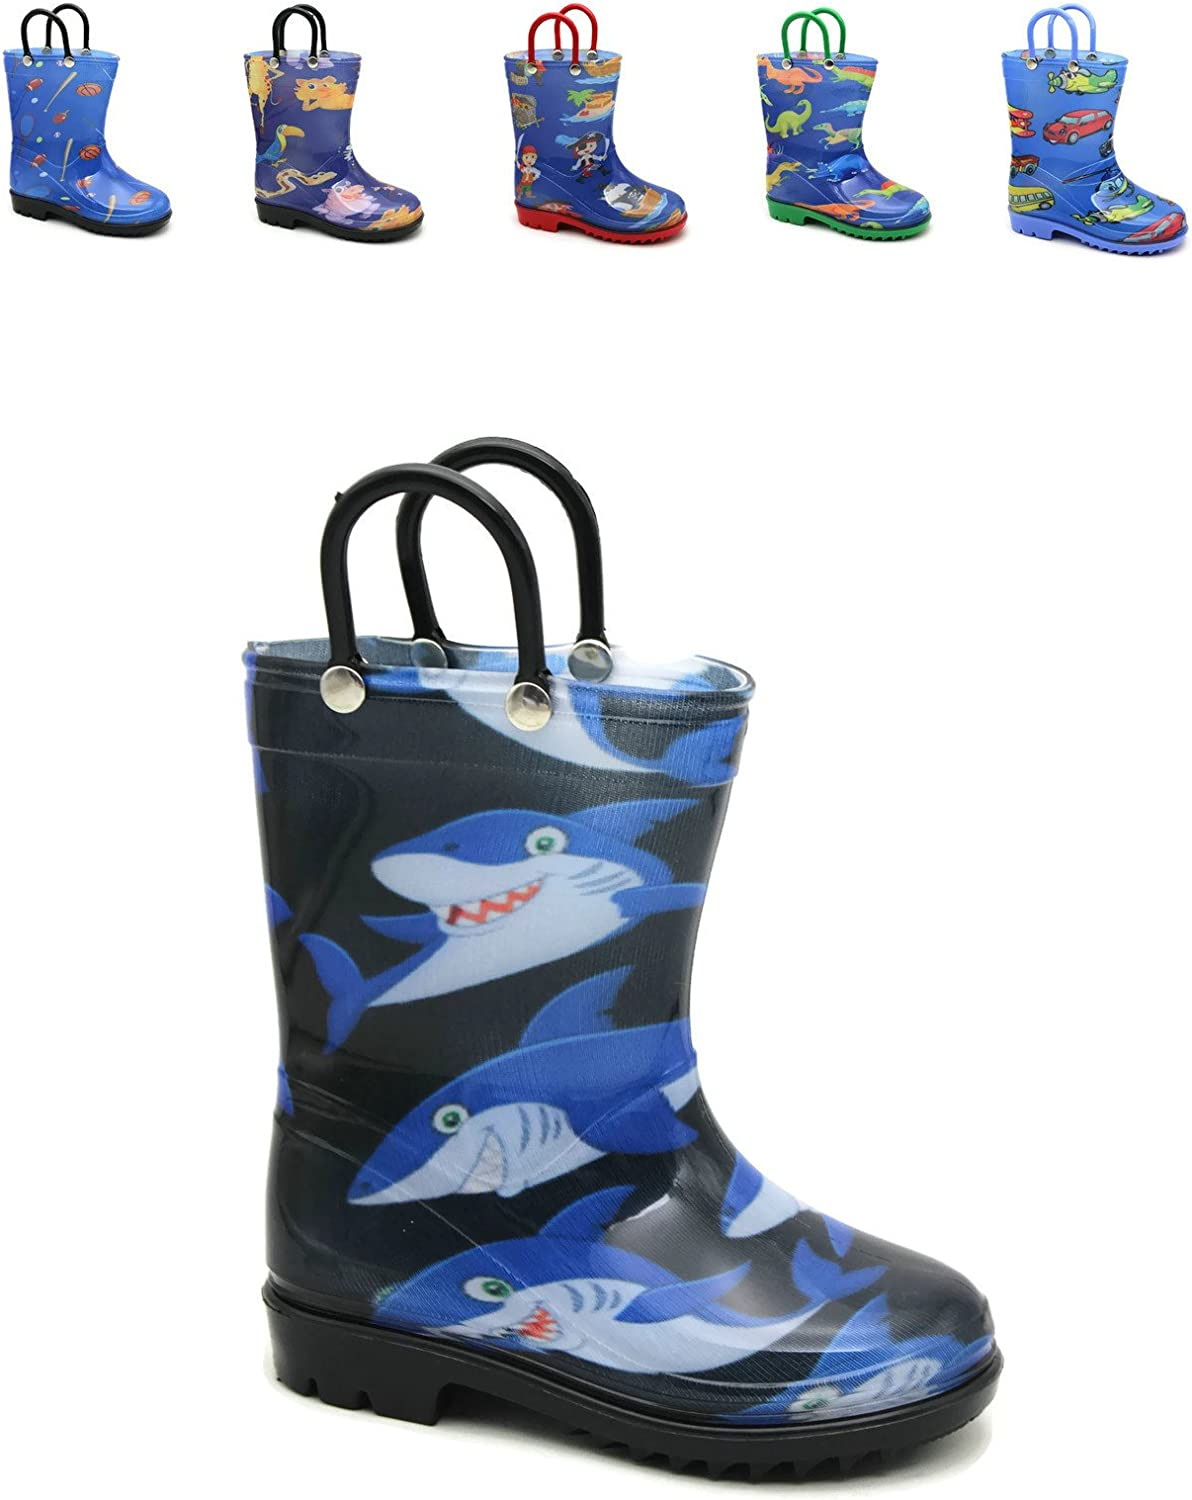 Storm Kidz Kids Boys Printed Rainboots Assorted Prints Toddler/Little Kid/Big Kid Sizes